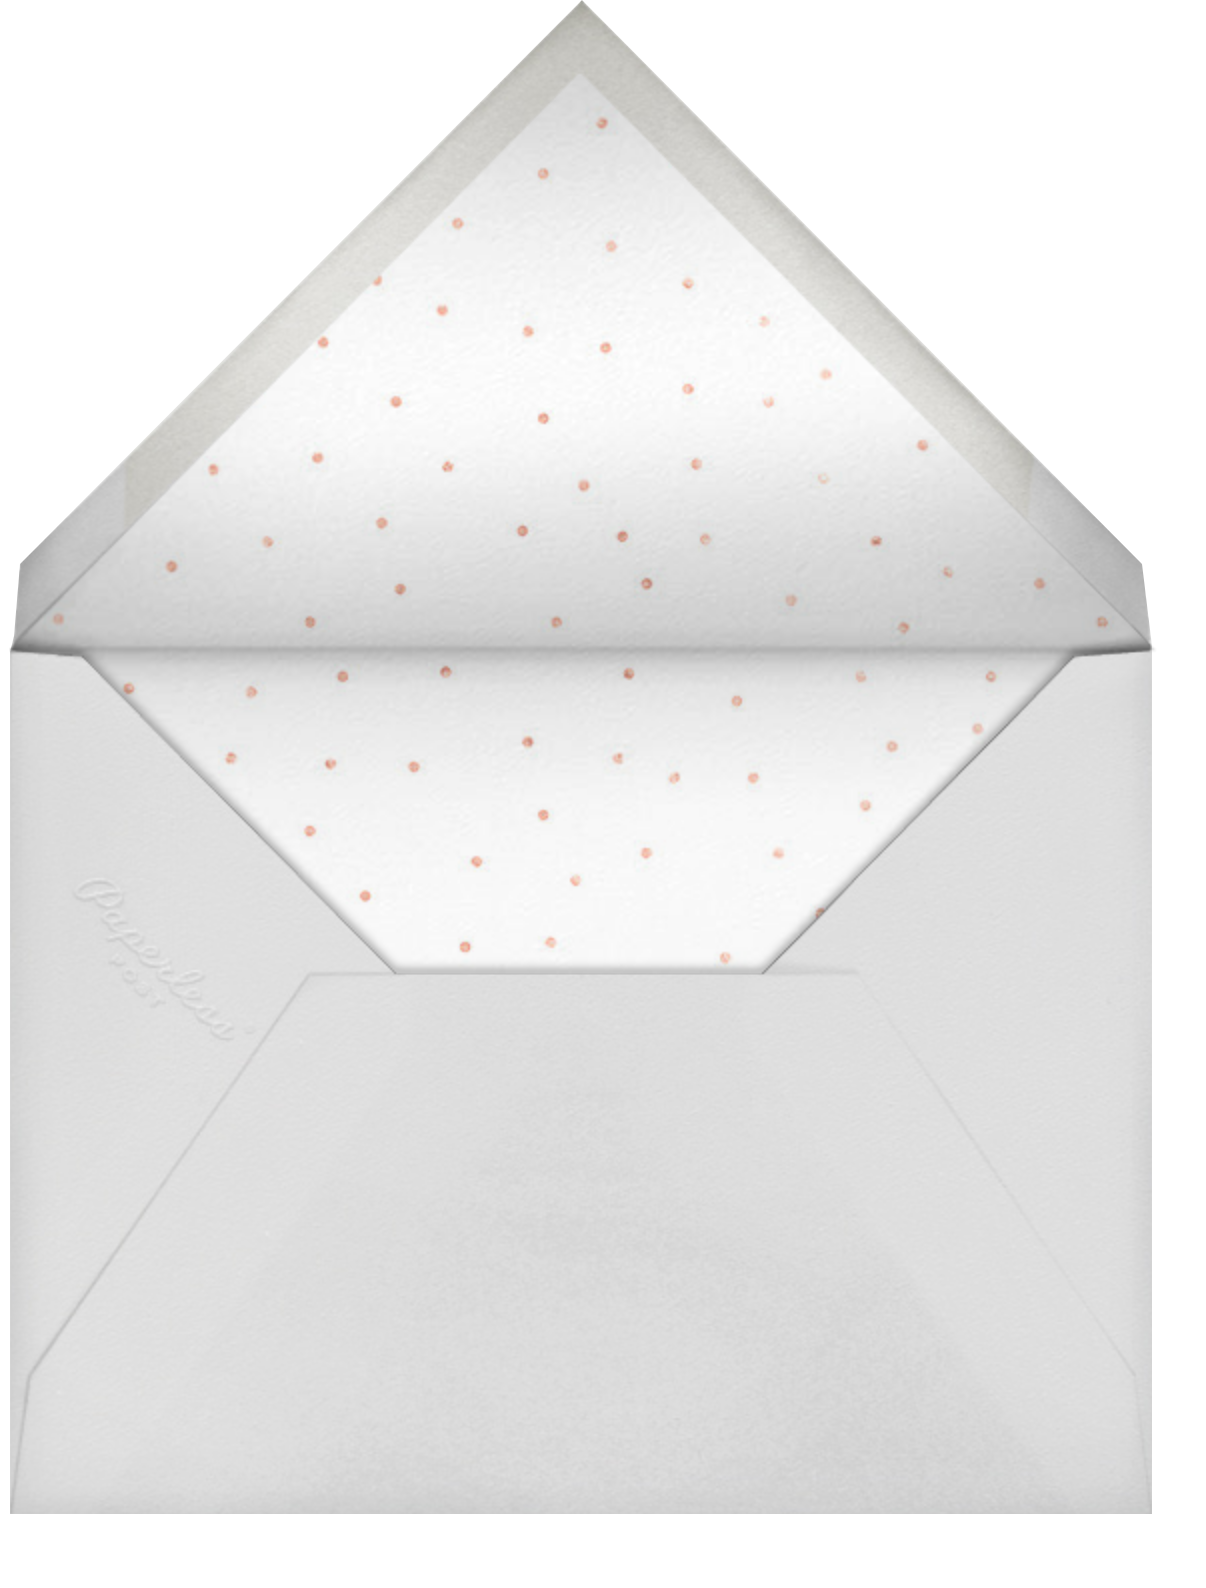 Cocktail Constellation - Paperless Post - New Year's Eve - envelope back